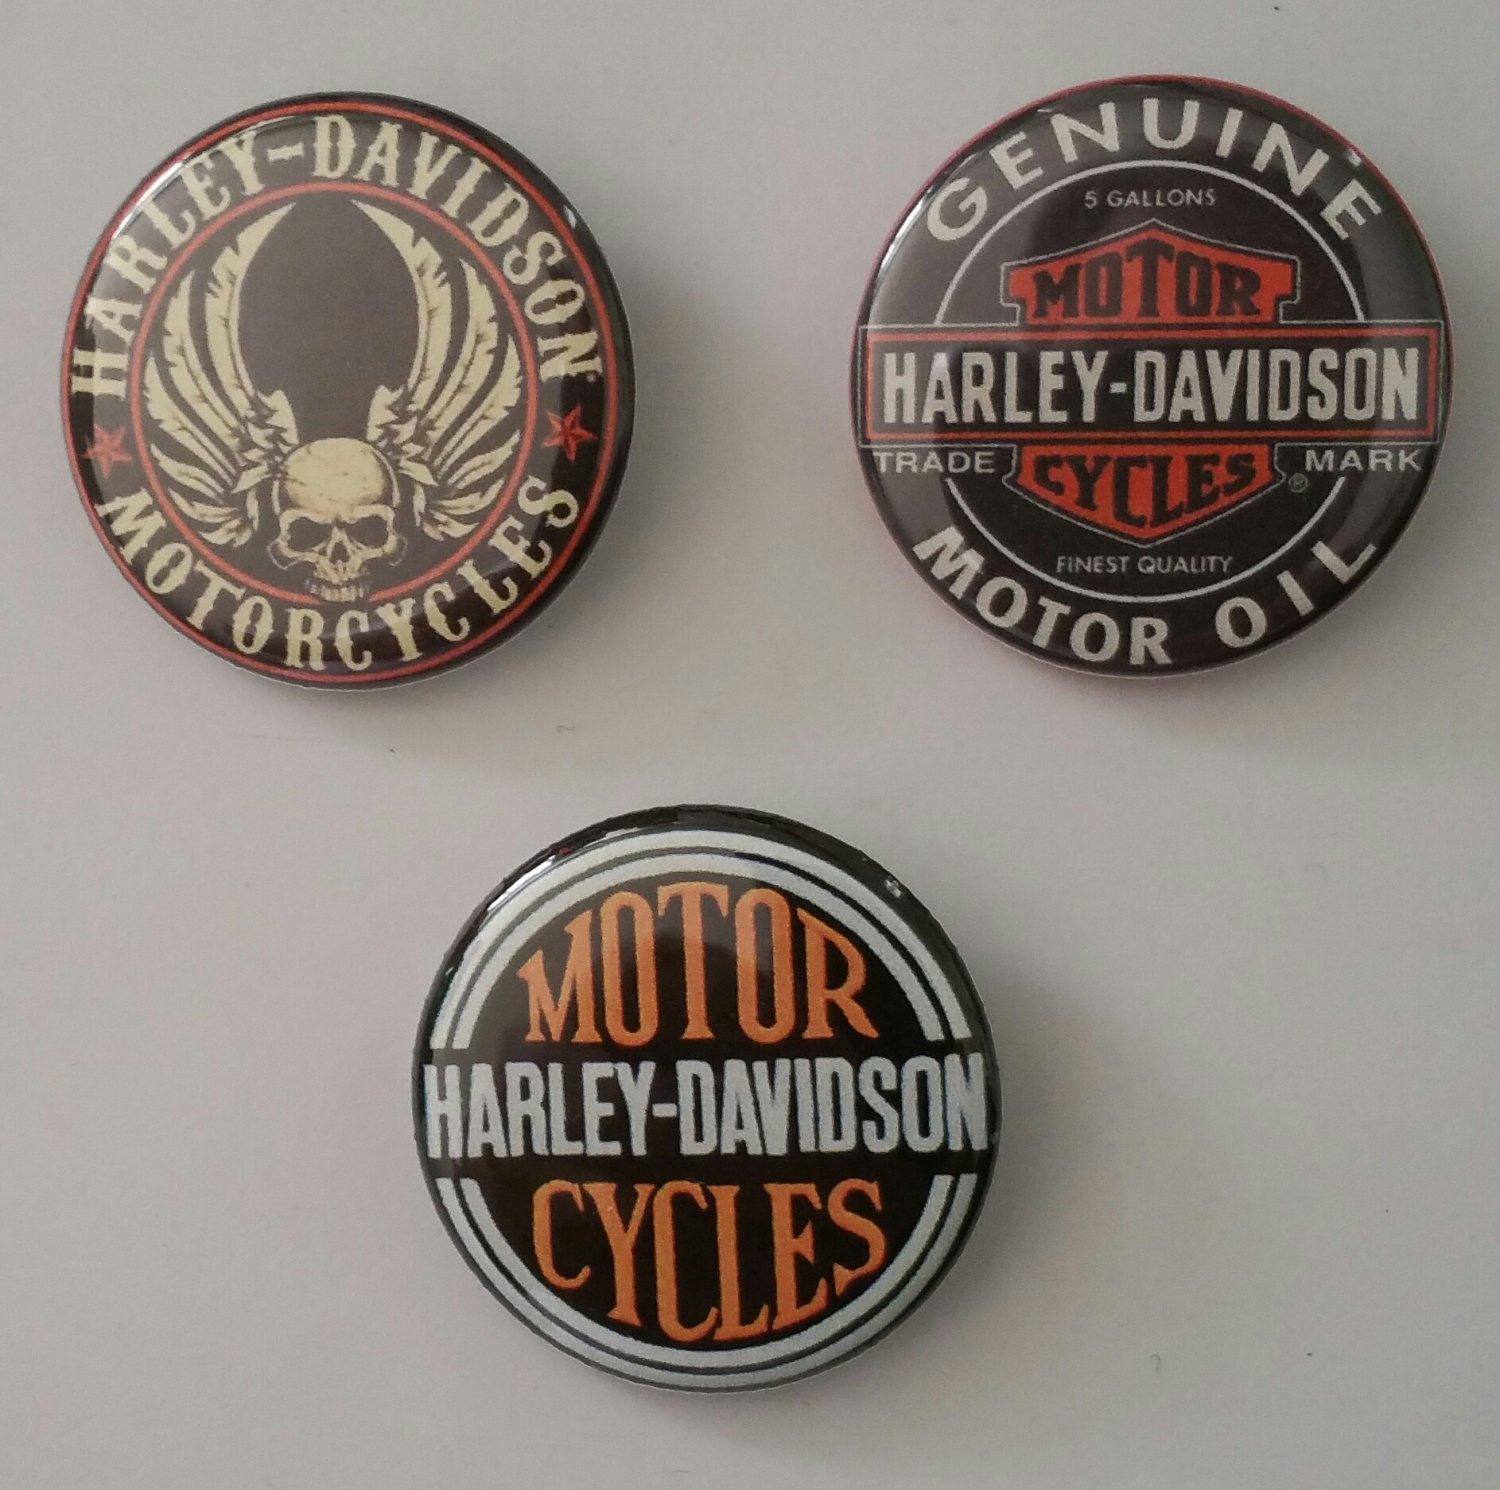 "Lot of 3 1.25"" Fridge Magnet Buttons Harley Davidson Motorcycles 1.25 in (Approx. 32mm)"